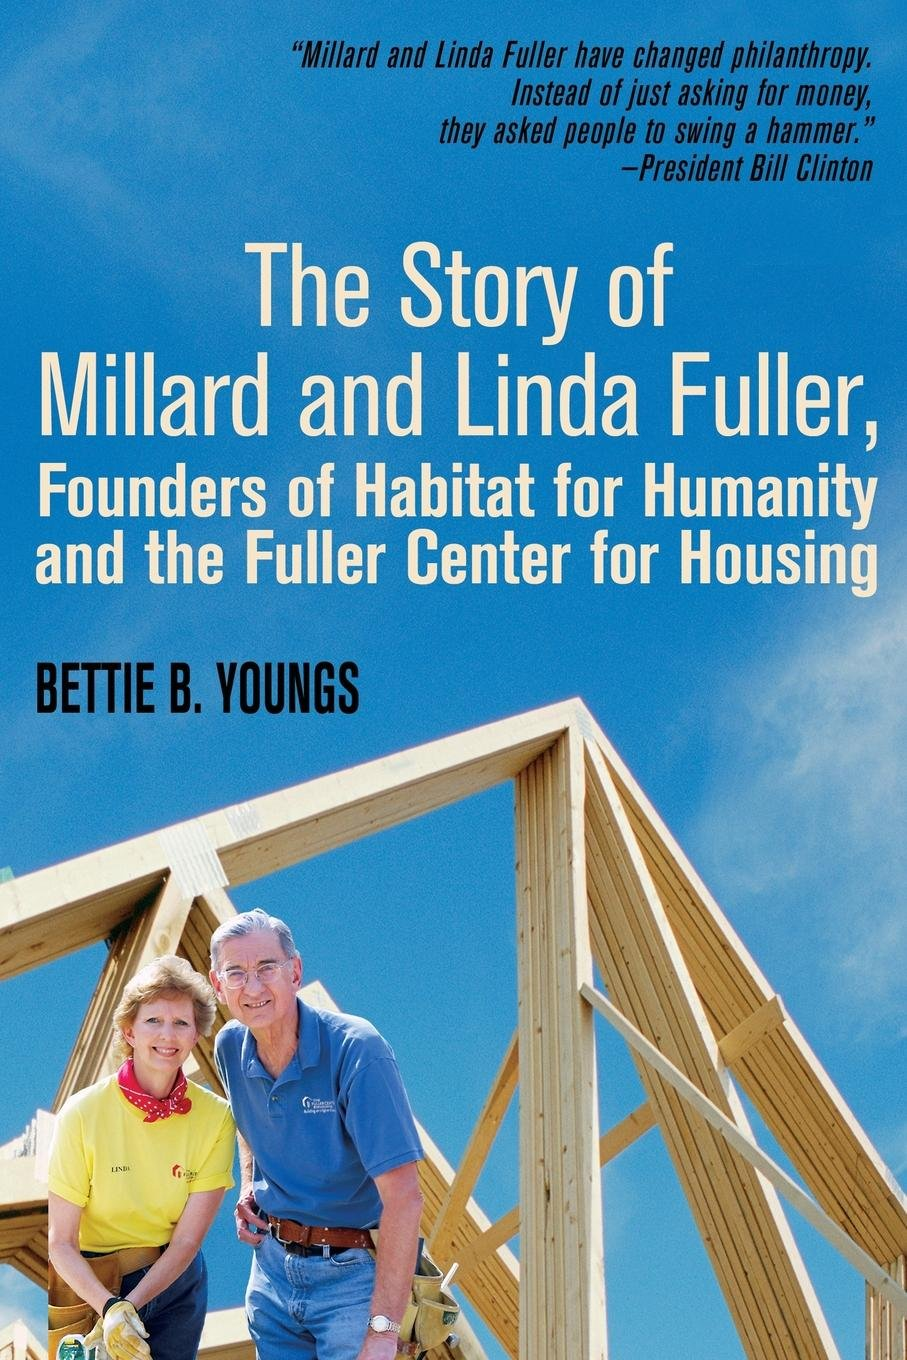 The Story of Millard and Linda Fuller, Founders of Habitat for Humanity and the Fuller Center for Housing pdf